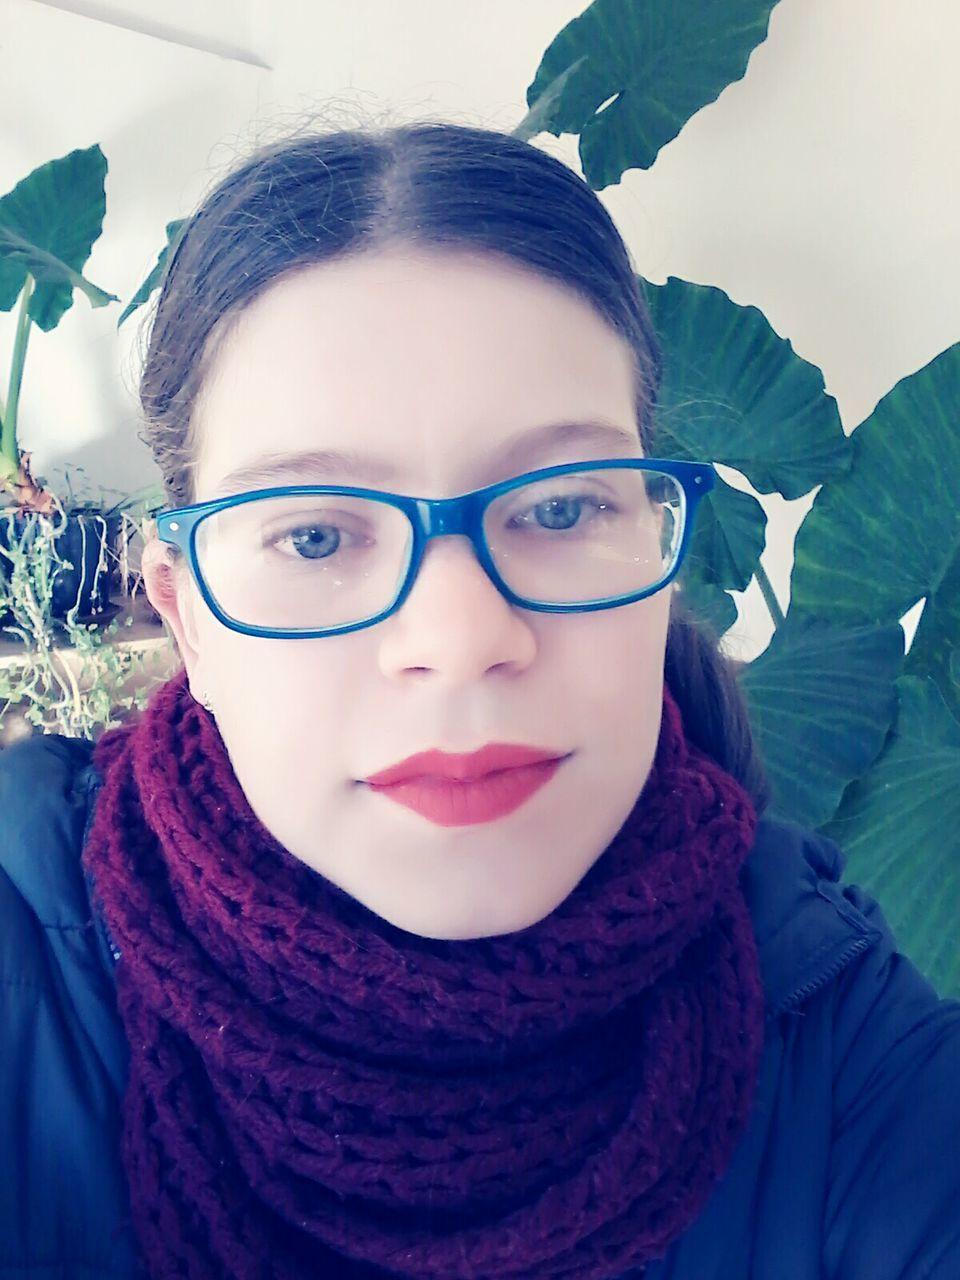 looking at camera, portrait, front view, one person, real people, headshot, scarf, eyeglasses, close-up, day, young women, young adult, outdoors, lifestyles, warm clothing, people